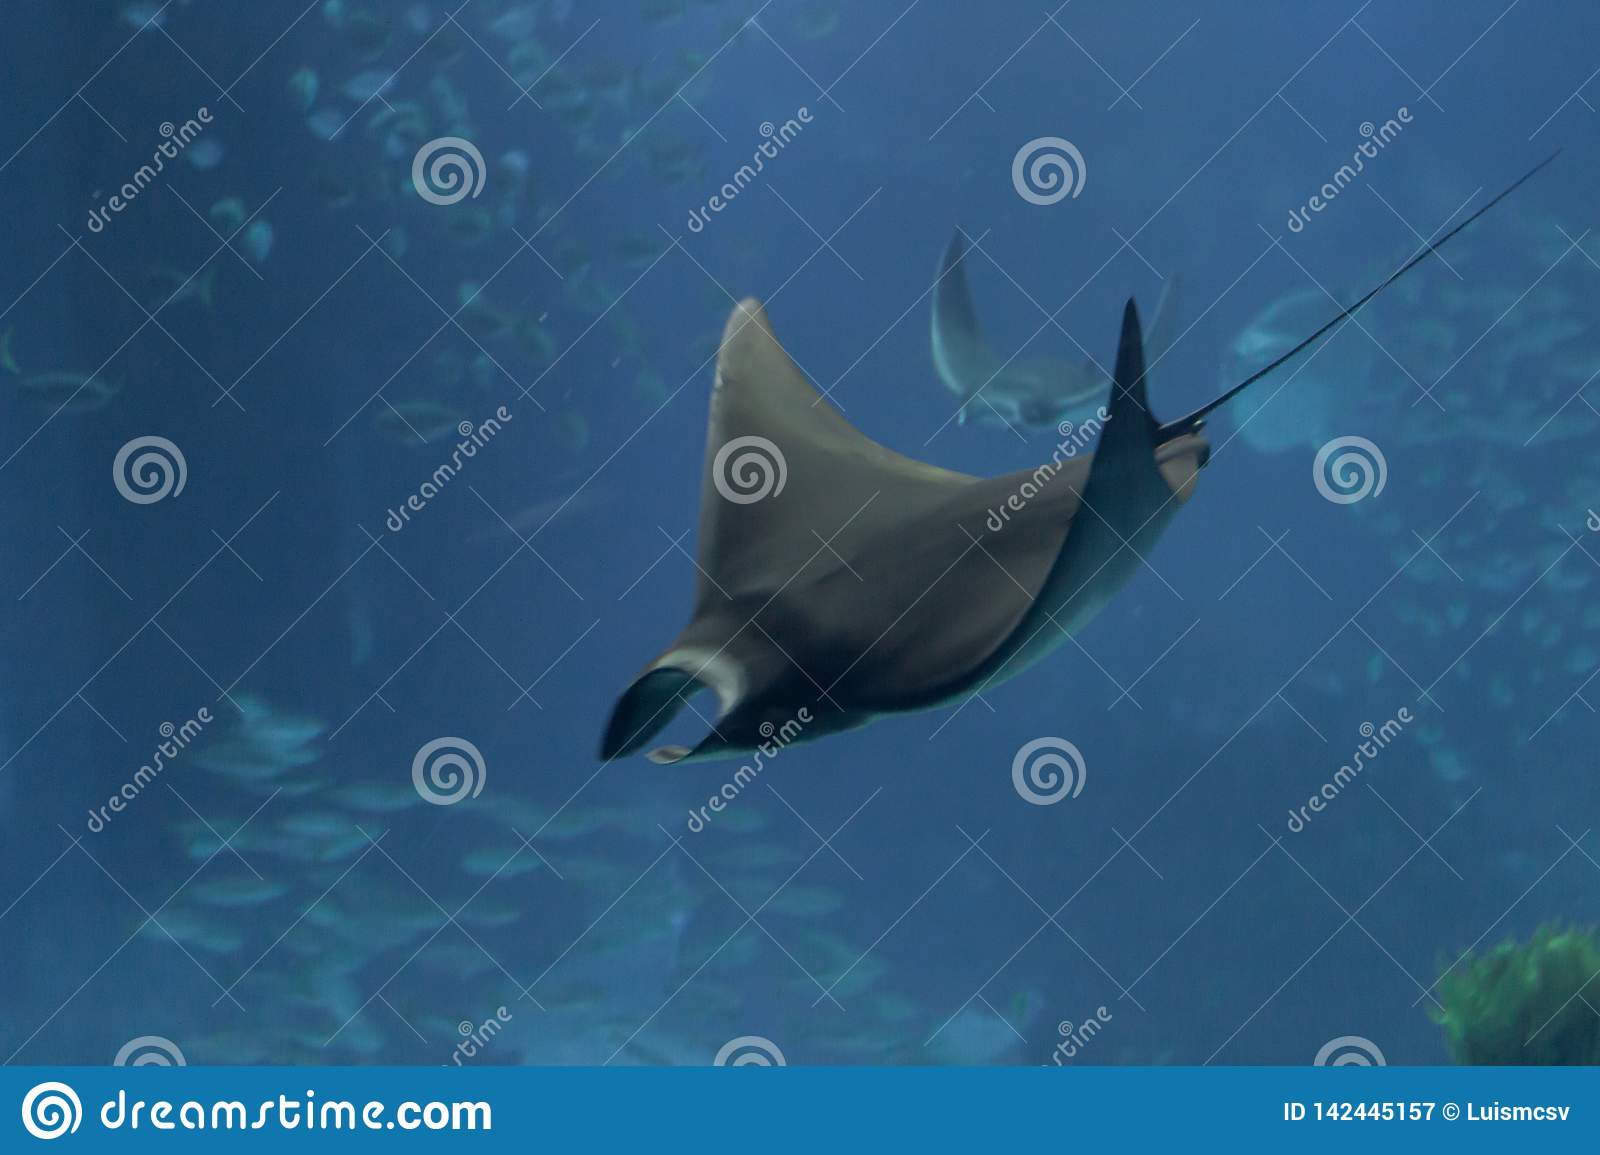 Photo of a ray swimming